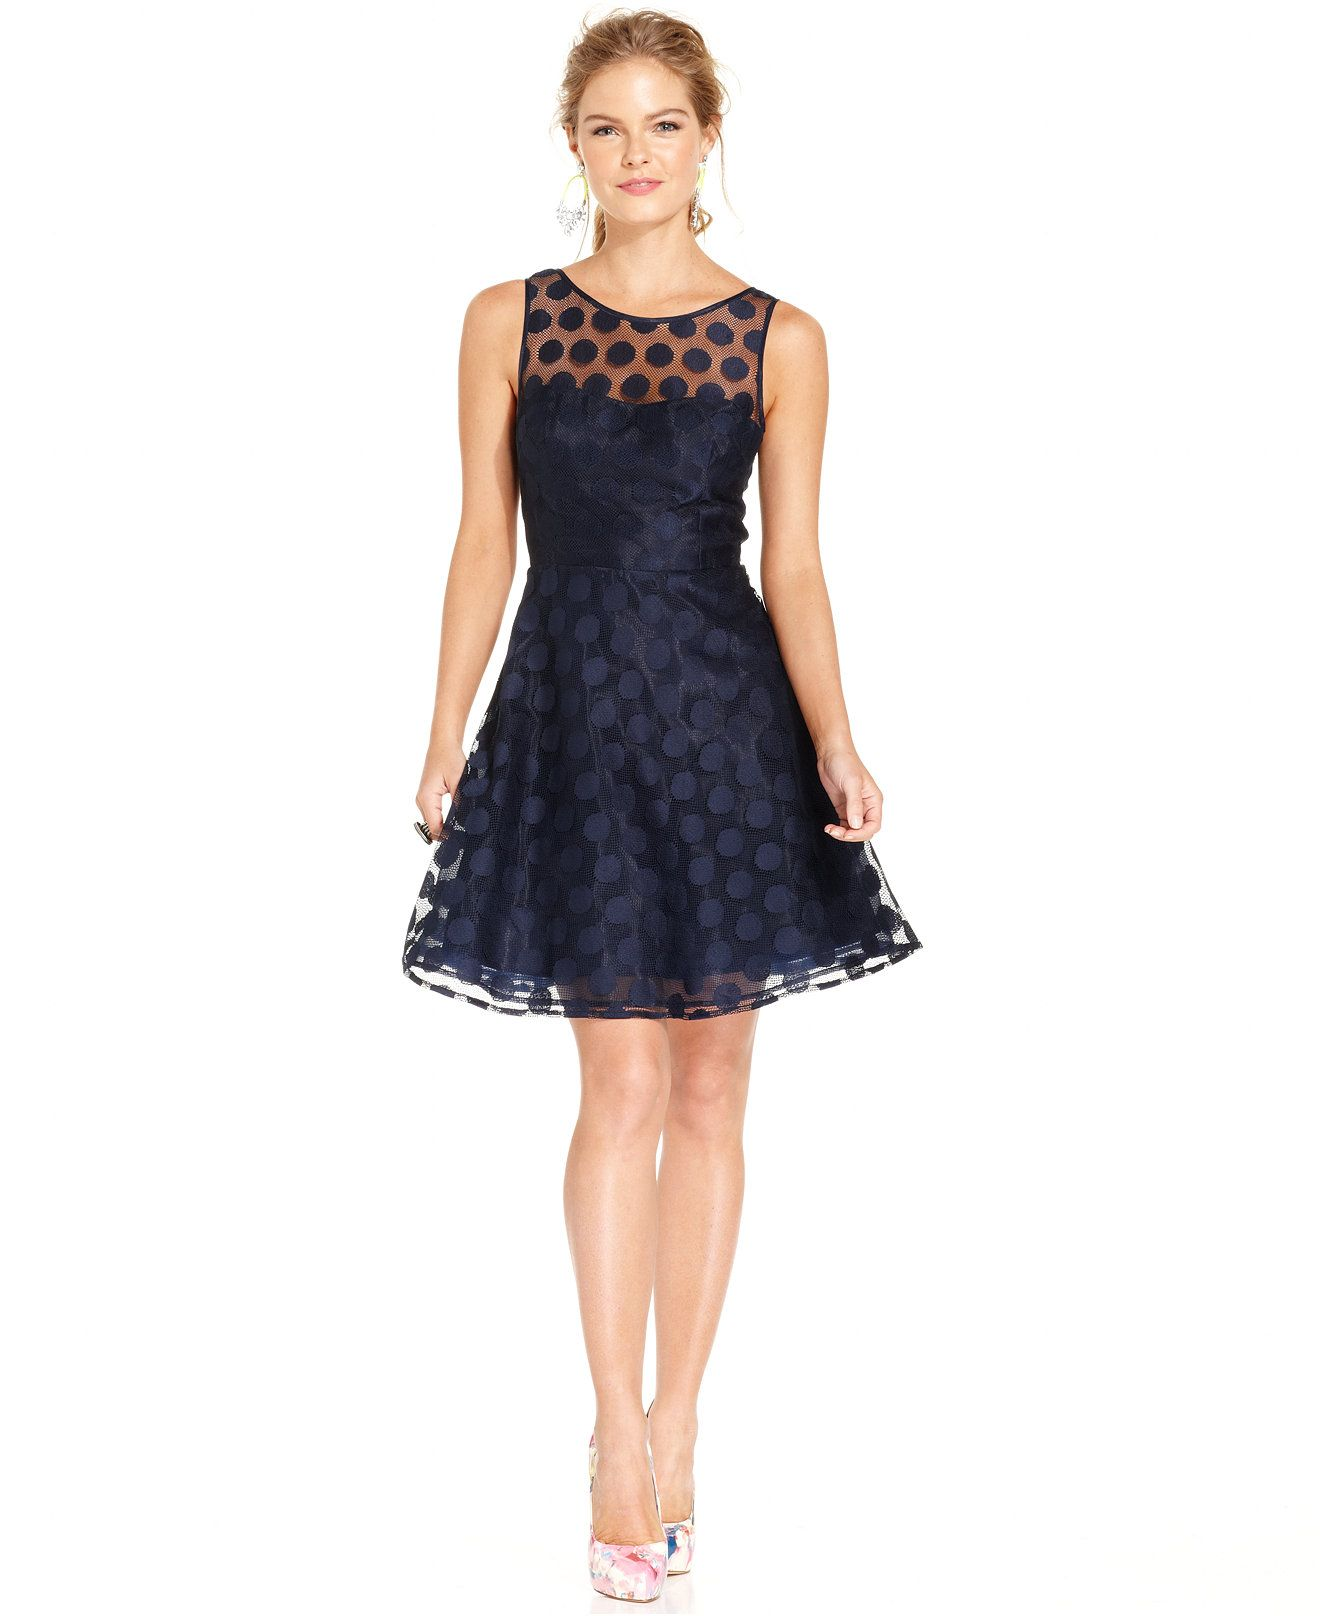 612f25dbd1b Betsey Johnson Sleeveless Illusion Polka-Dot Dress - Rehearsal Dinner -  Women - Macy s